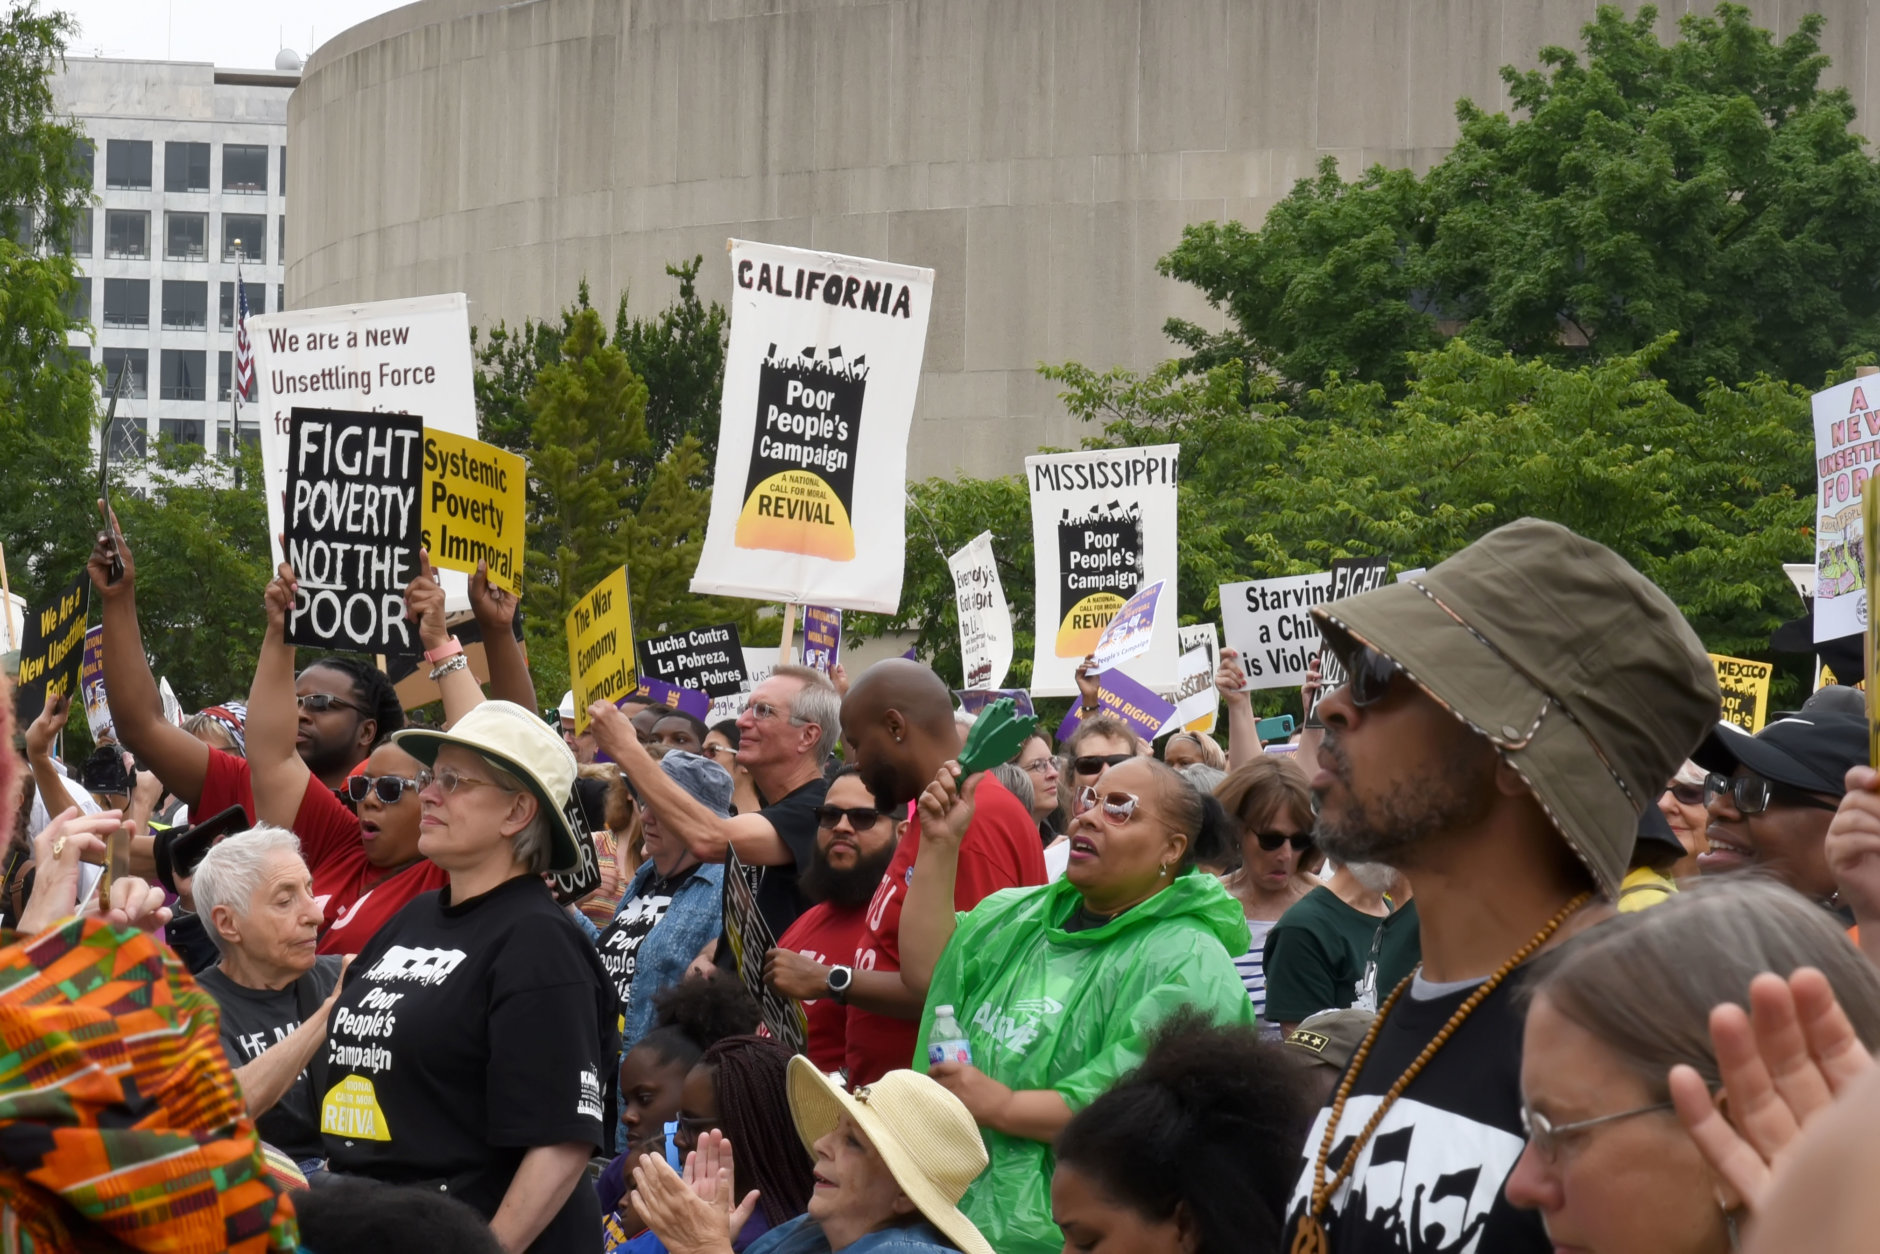 Scenes from the Poor People's Rally and March